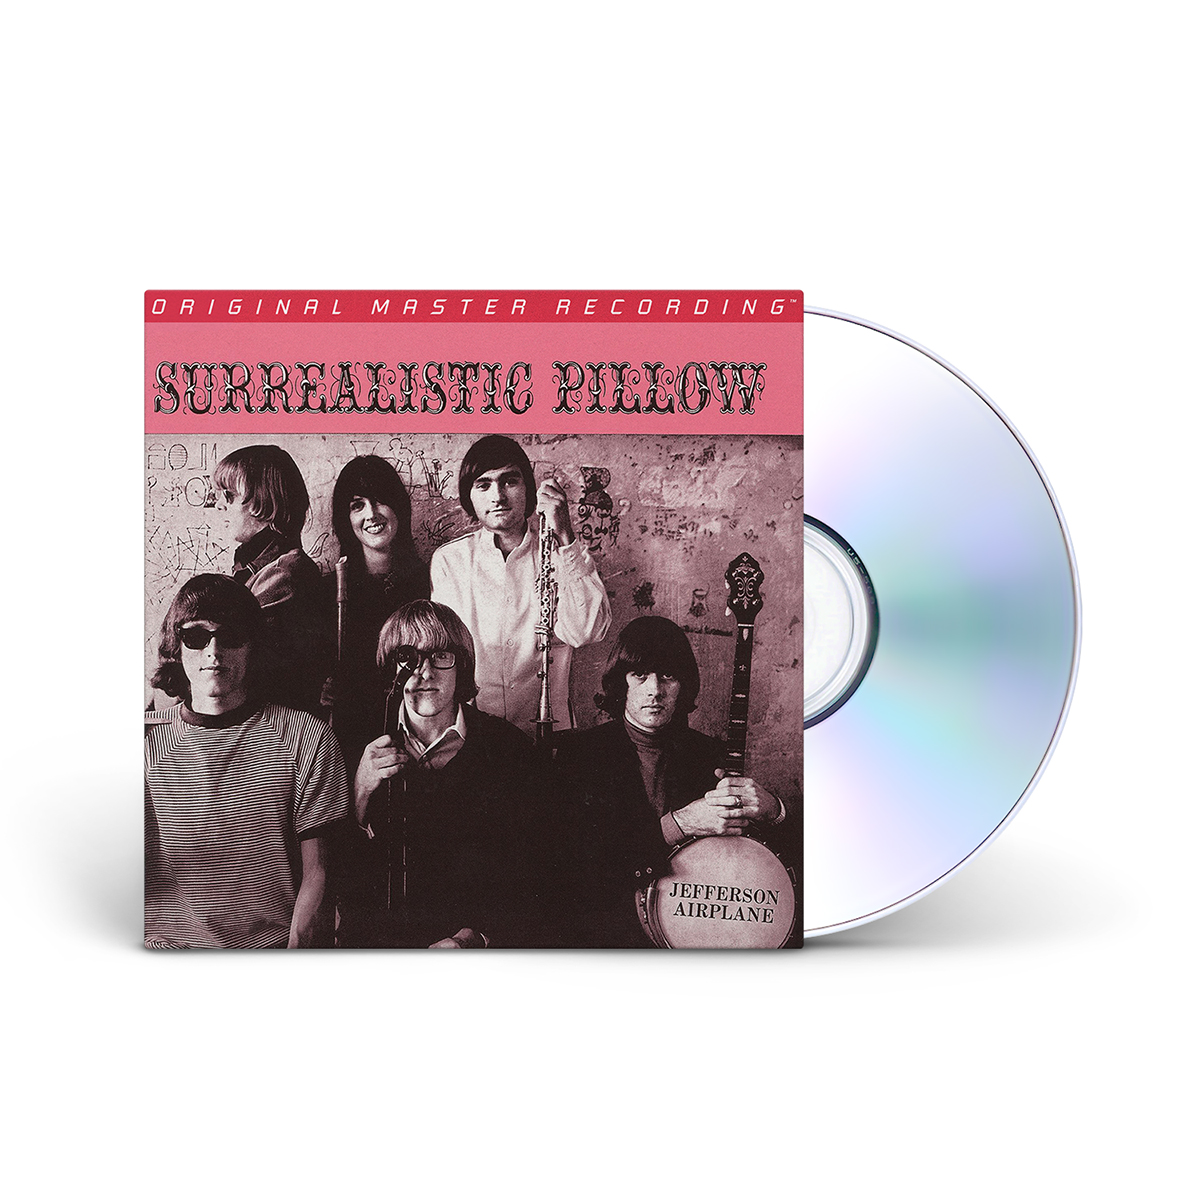 Jefferson Airplane Surrealistic Pillow, Numbered Hybrid Mono SACD